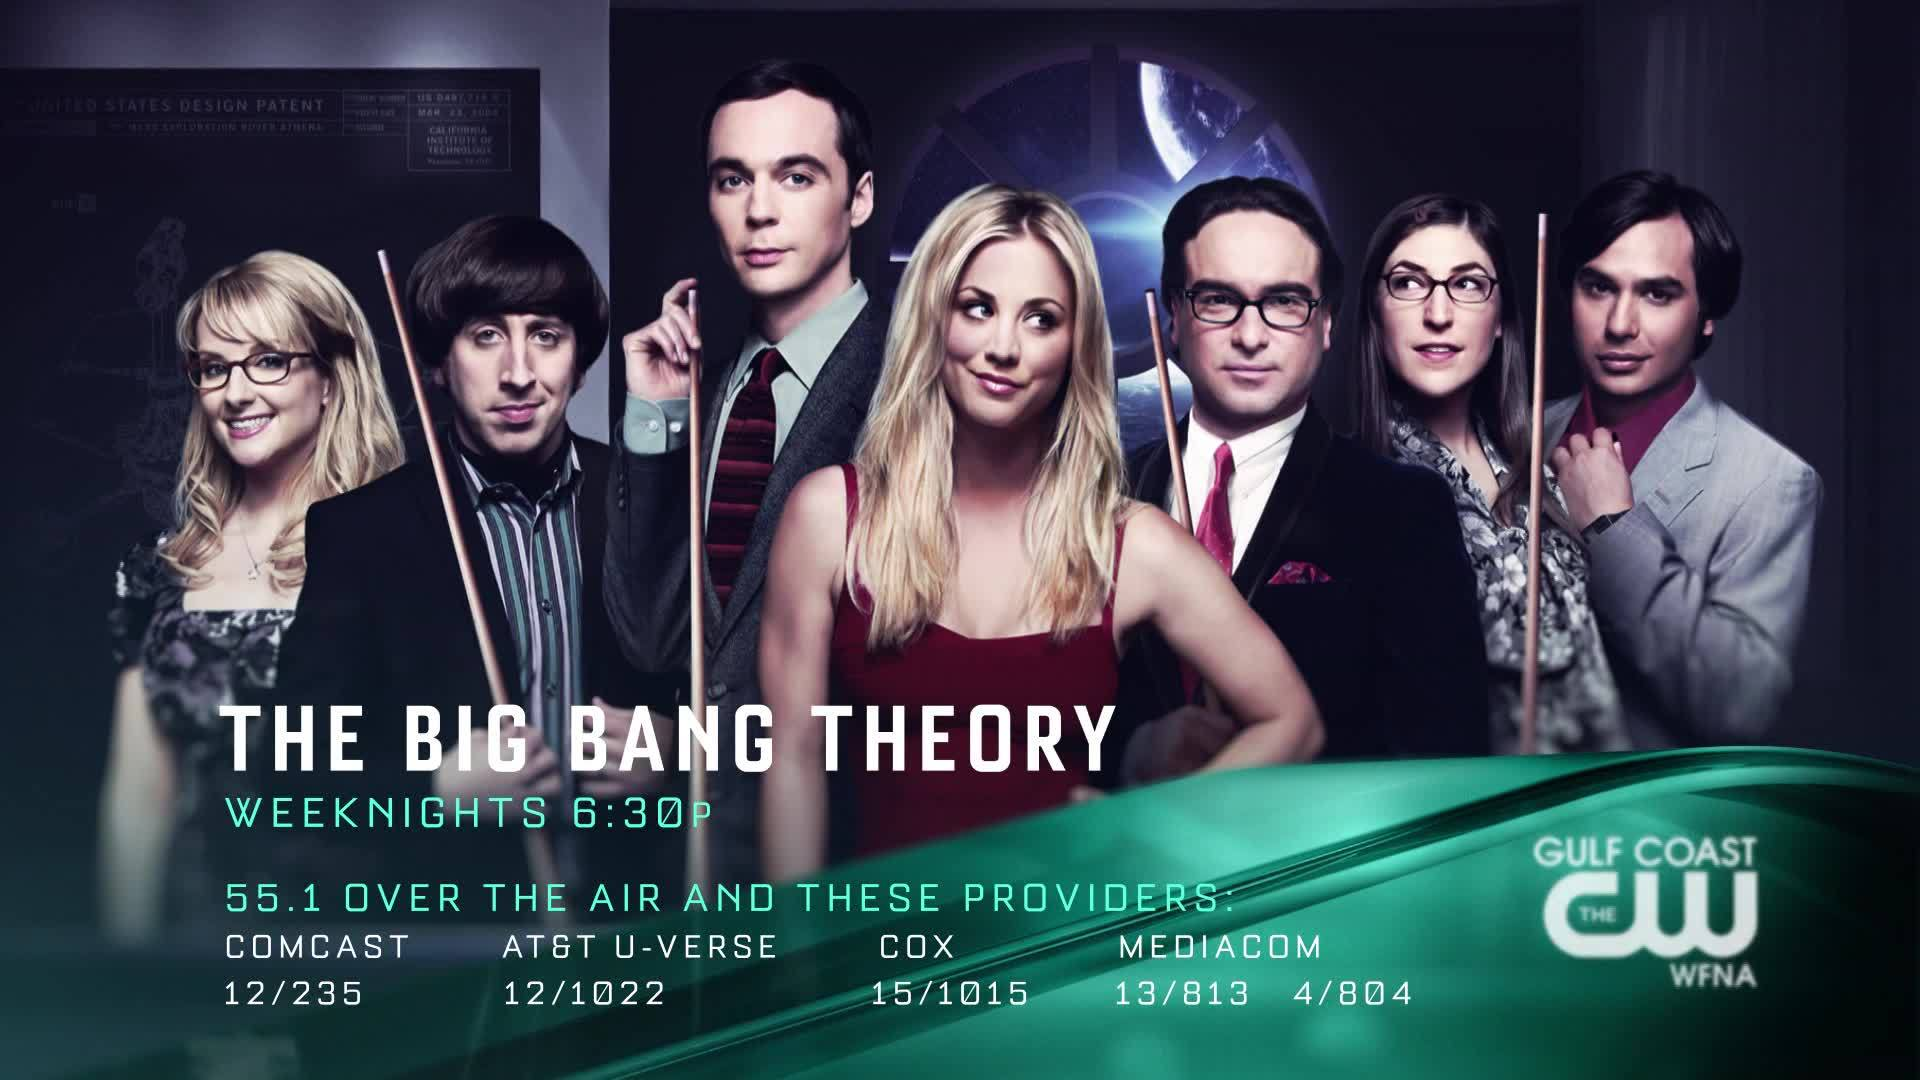 The Big Bang Theory | Now at a new time on The GCCW